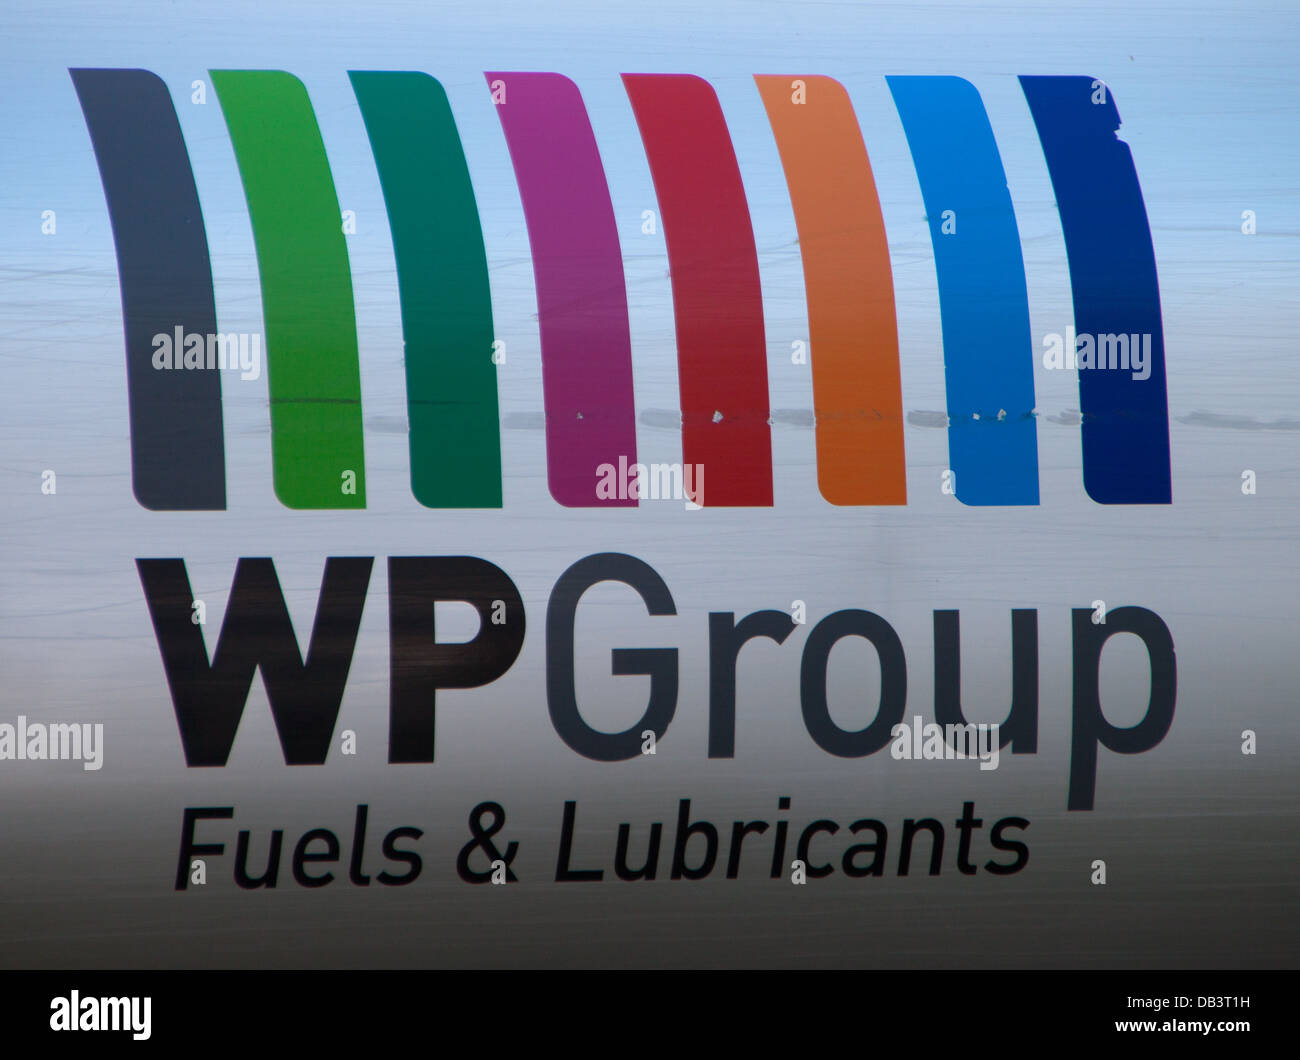 WP Group Fuels & Lubricants sign on side of lorry. - Stock Image